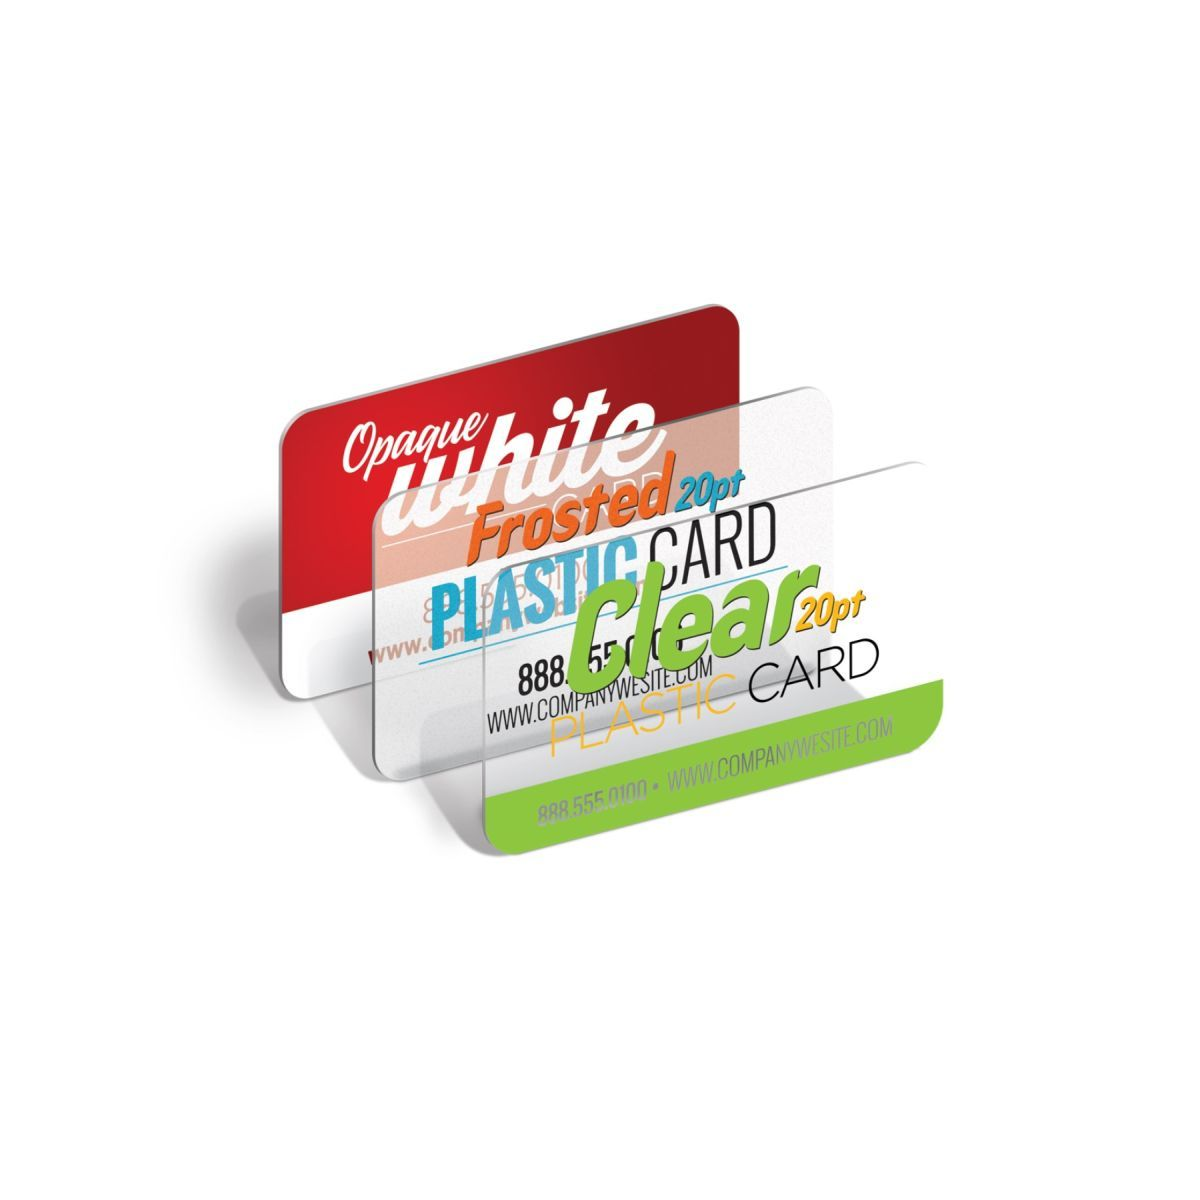 Clear Business Card-022118-1